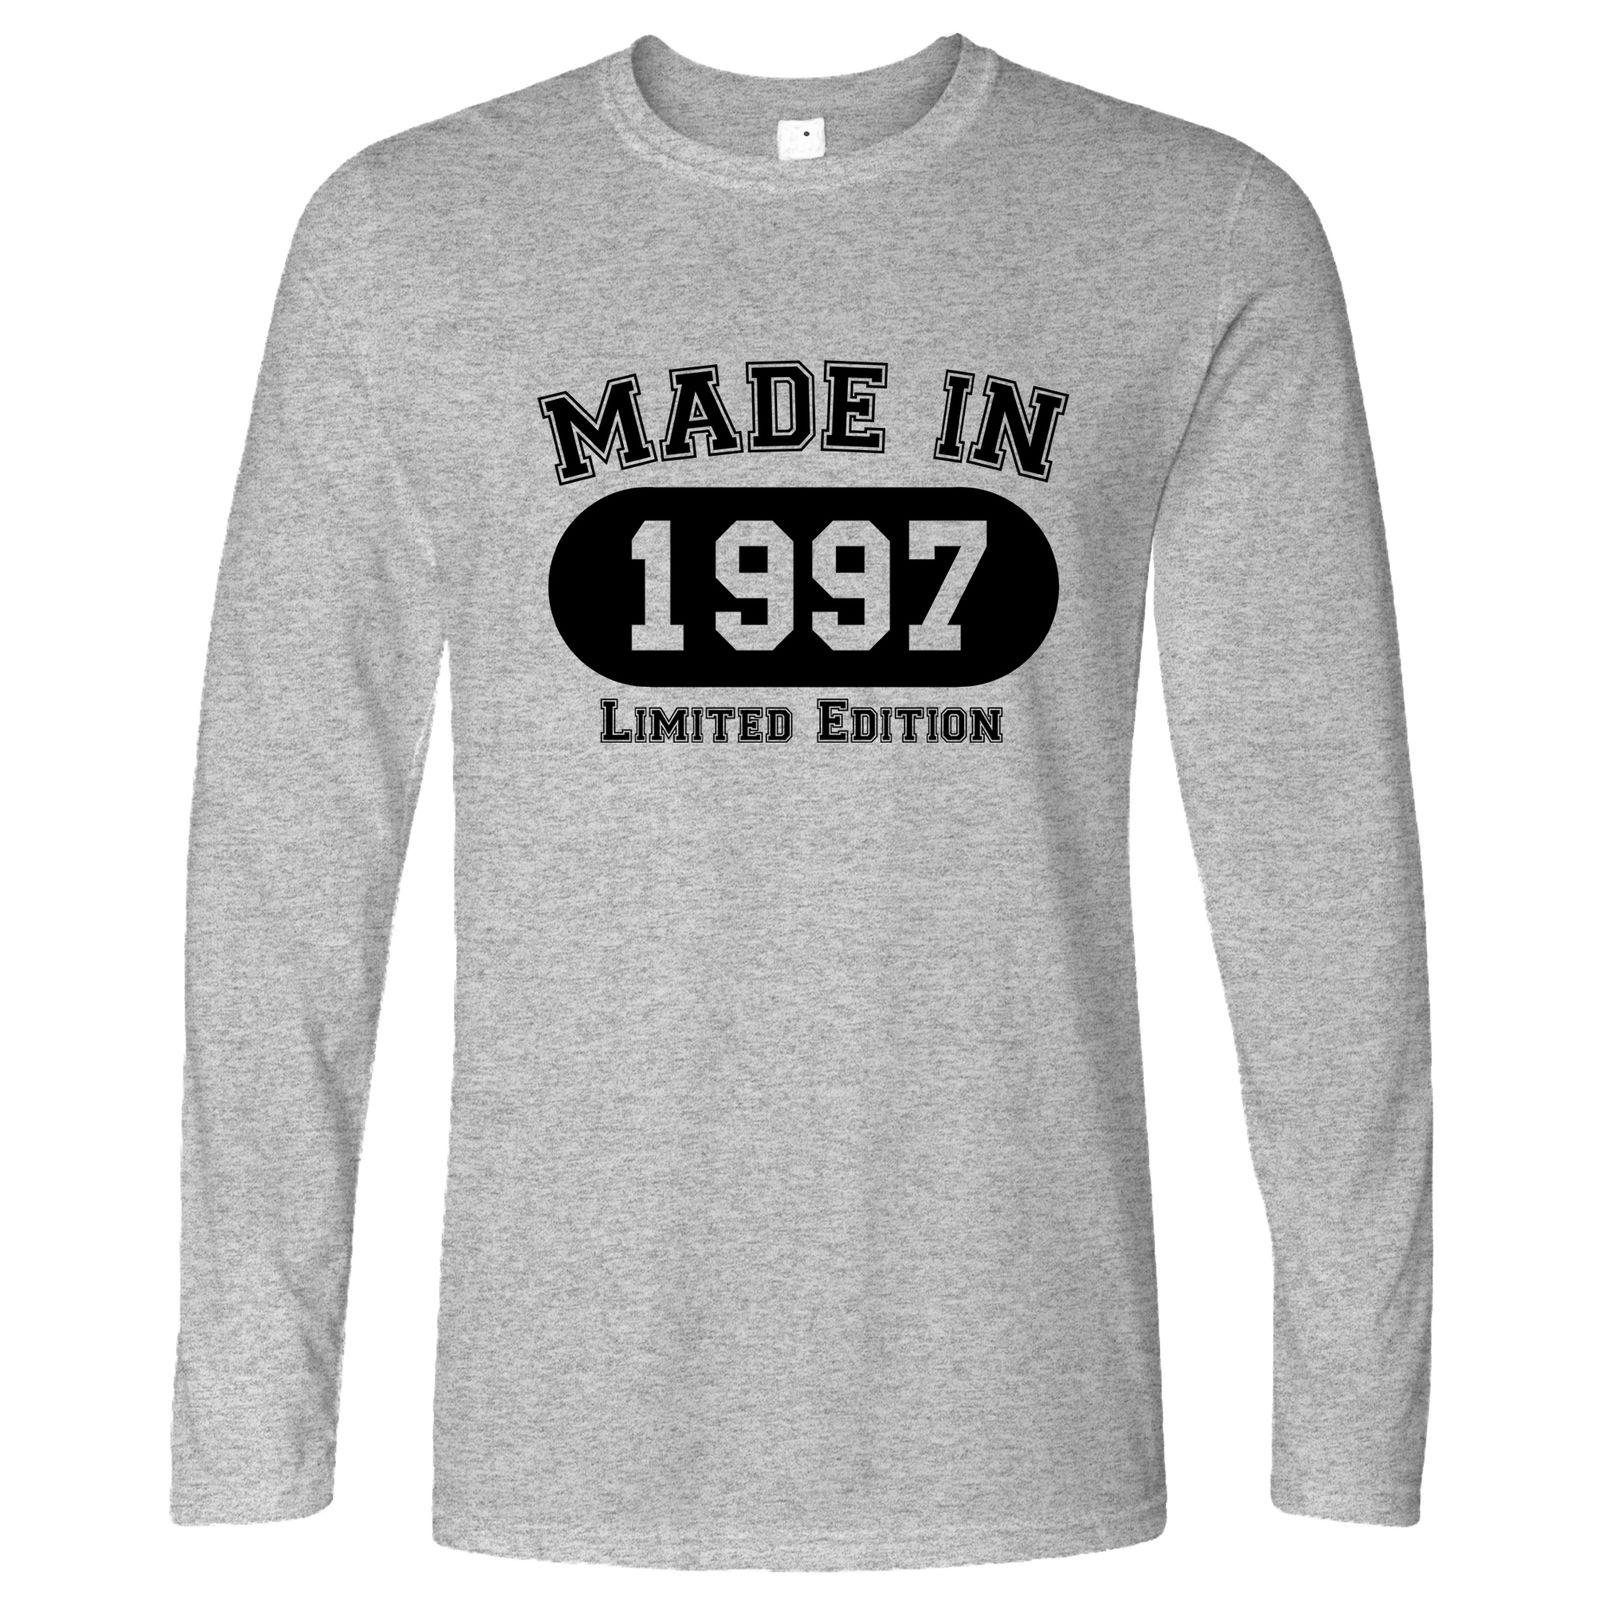 21st Birthday Long Sleeve Made In 1997 Limited Edition Printed Gift Idea T Shirts Deals Super Cool From Banwanyue5 1584